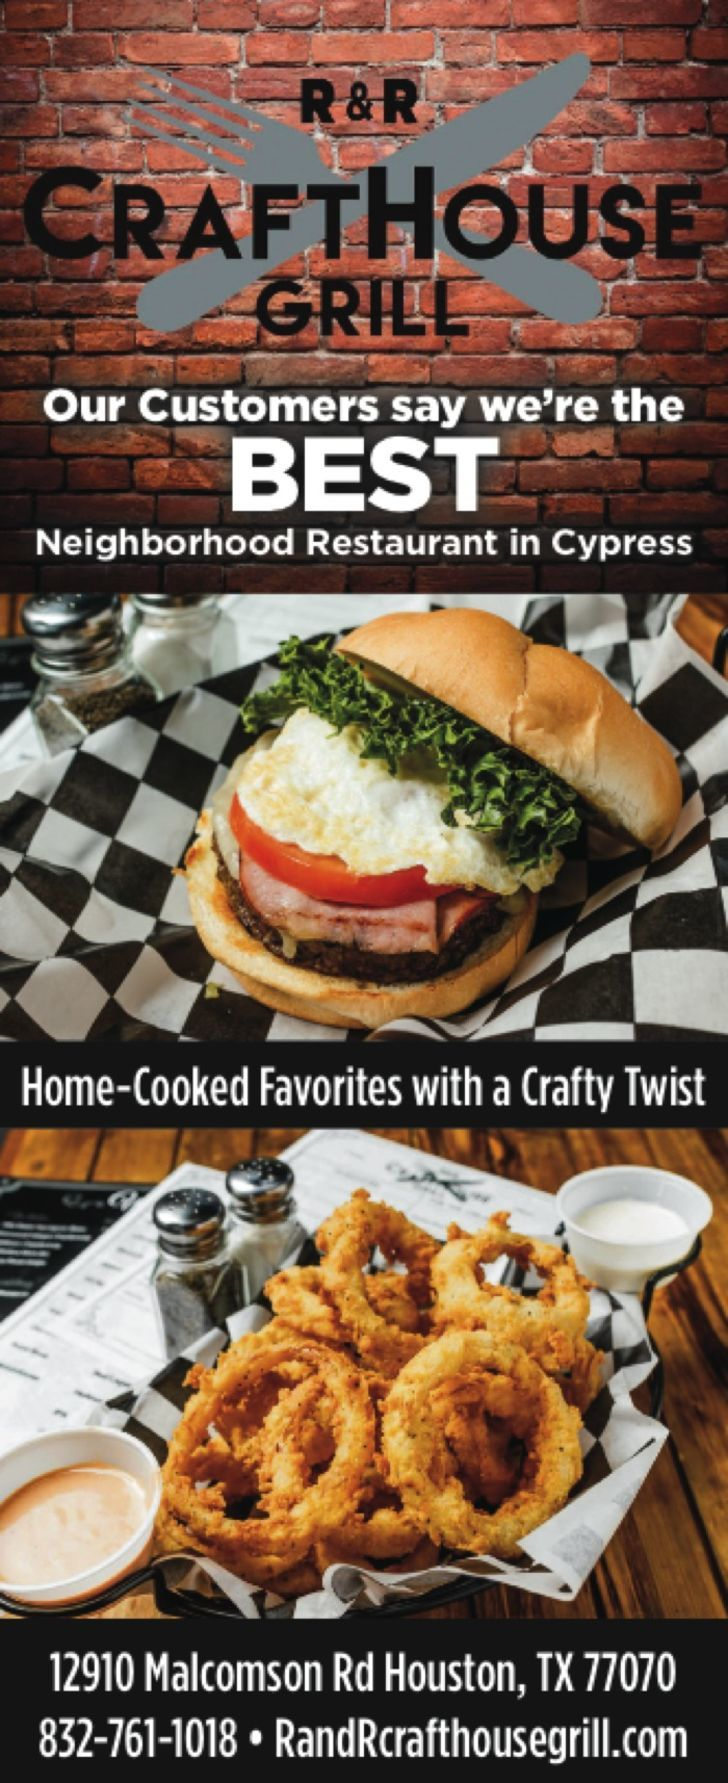 Crafthouse Grill